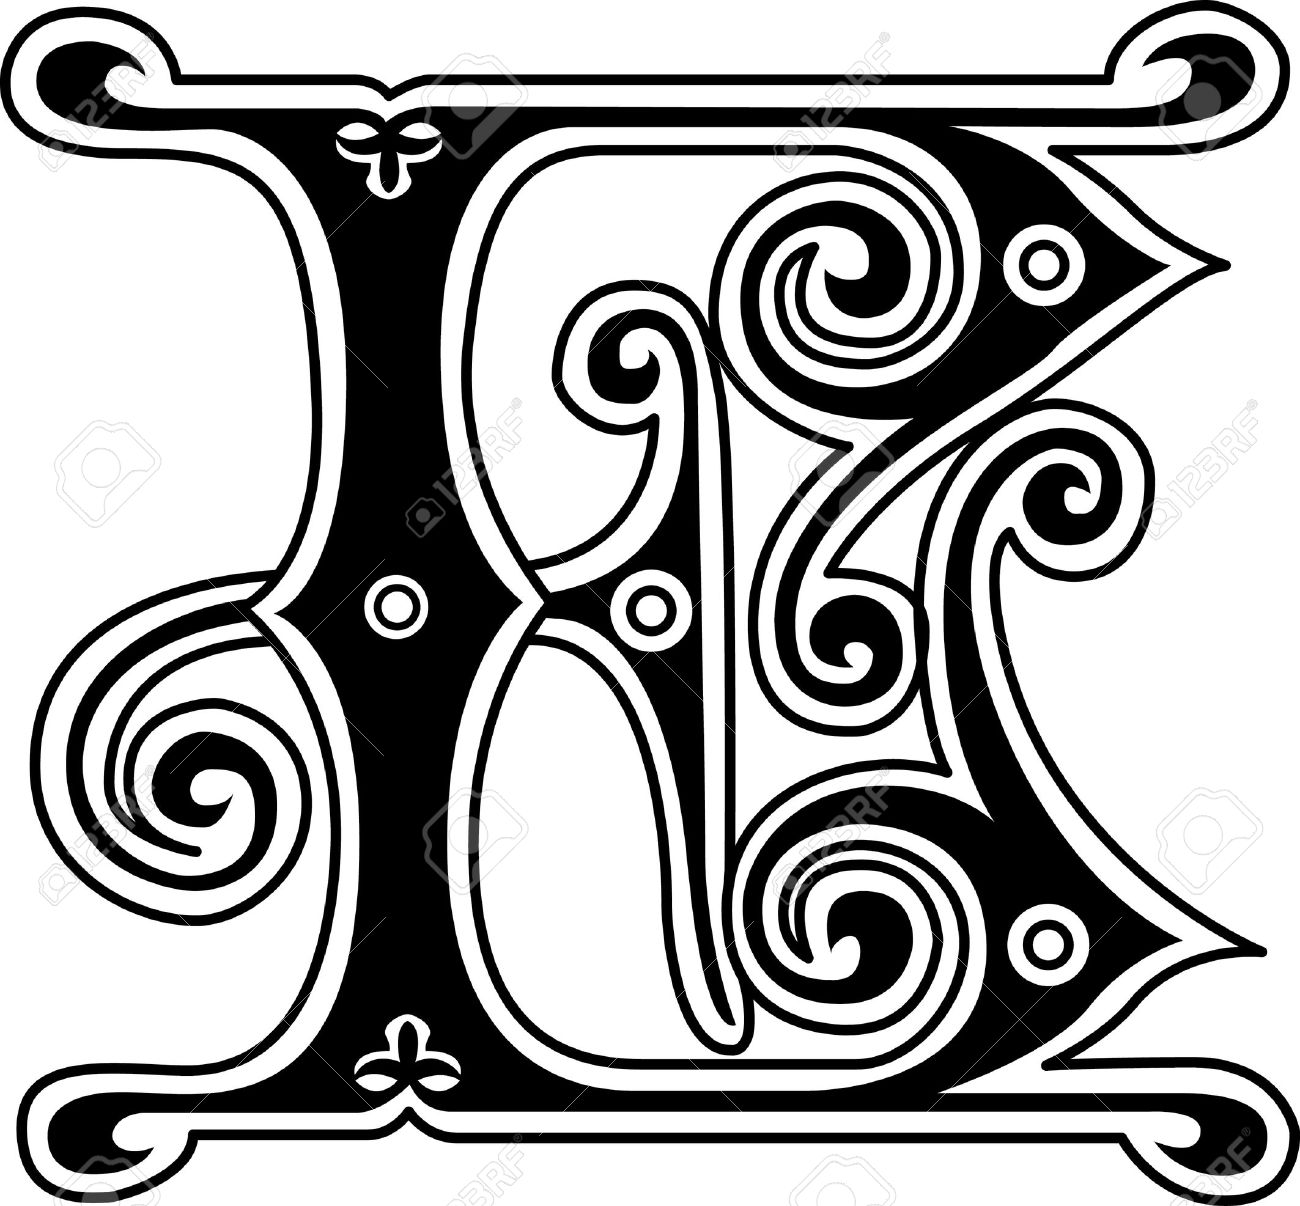 Classic Style English Alphabet Letter E Monochrome Royalty Free